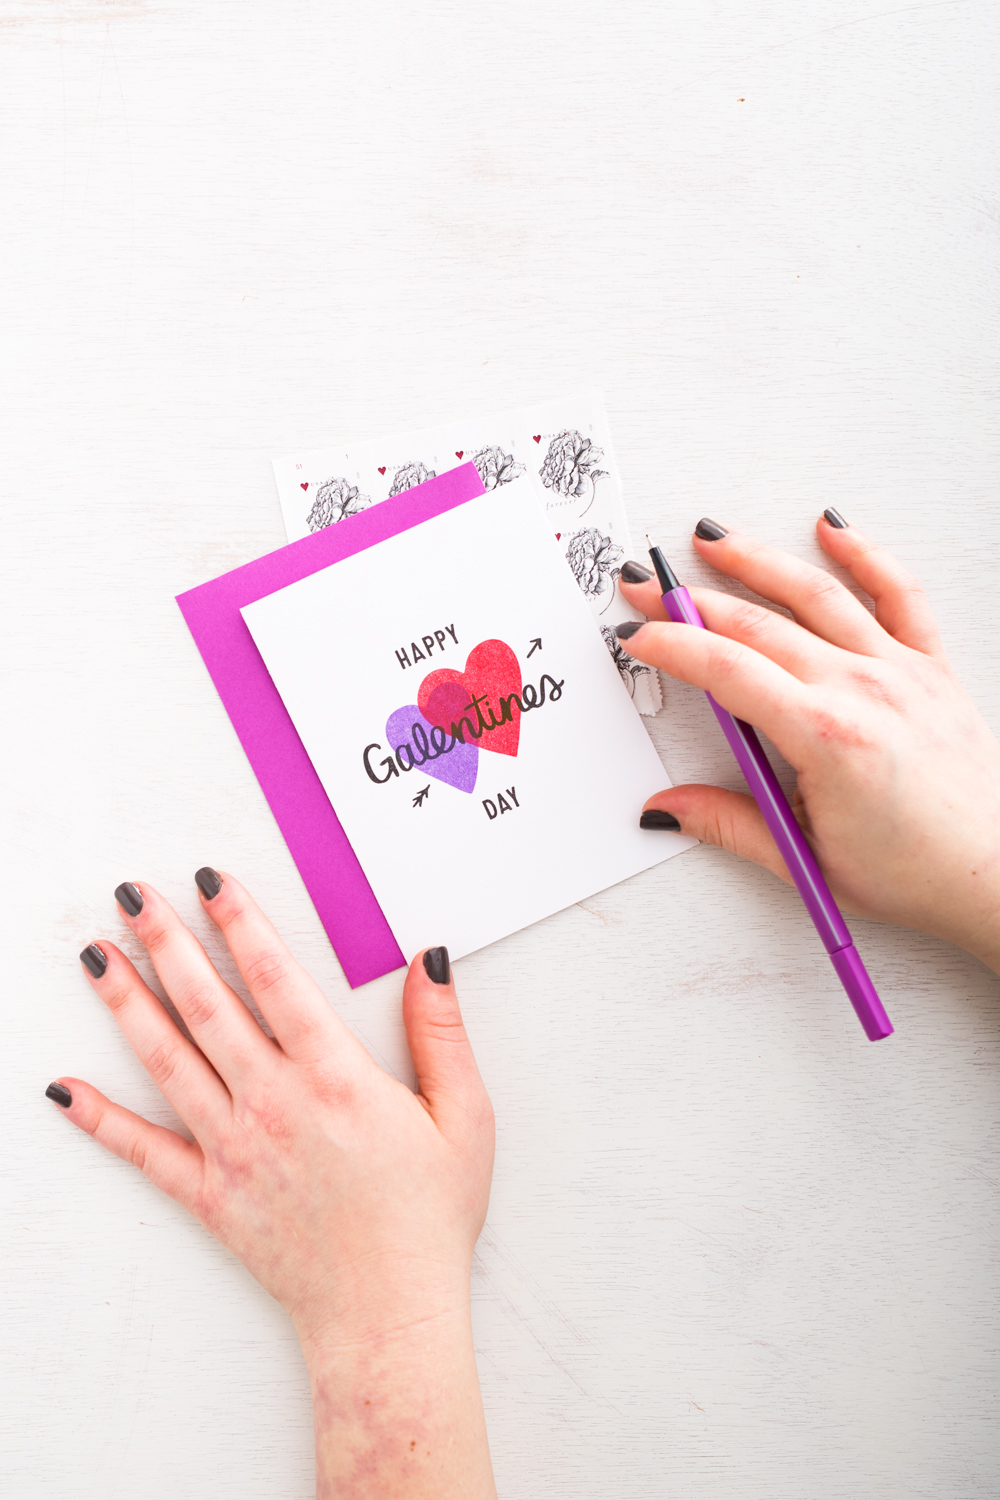 Happy Galentines Day card by Kat Marshello